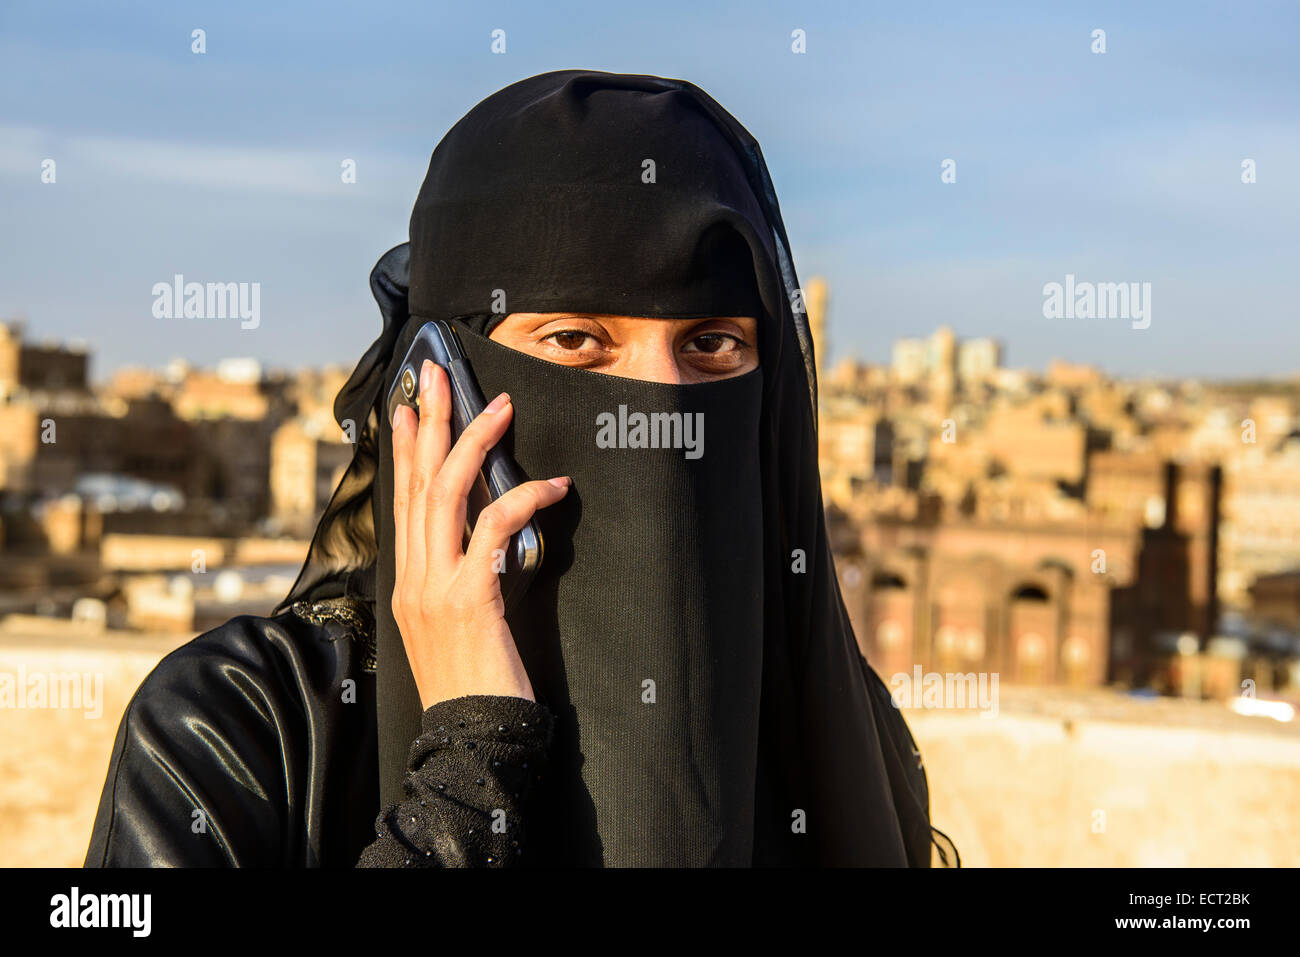 Veiled young woman on her mobile, in the old city, Sana'a, Yemen - Stock Image